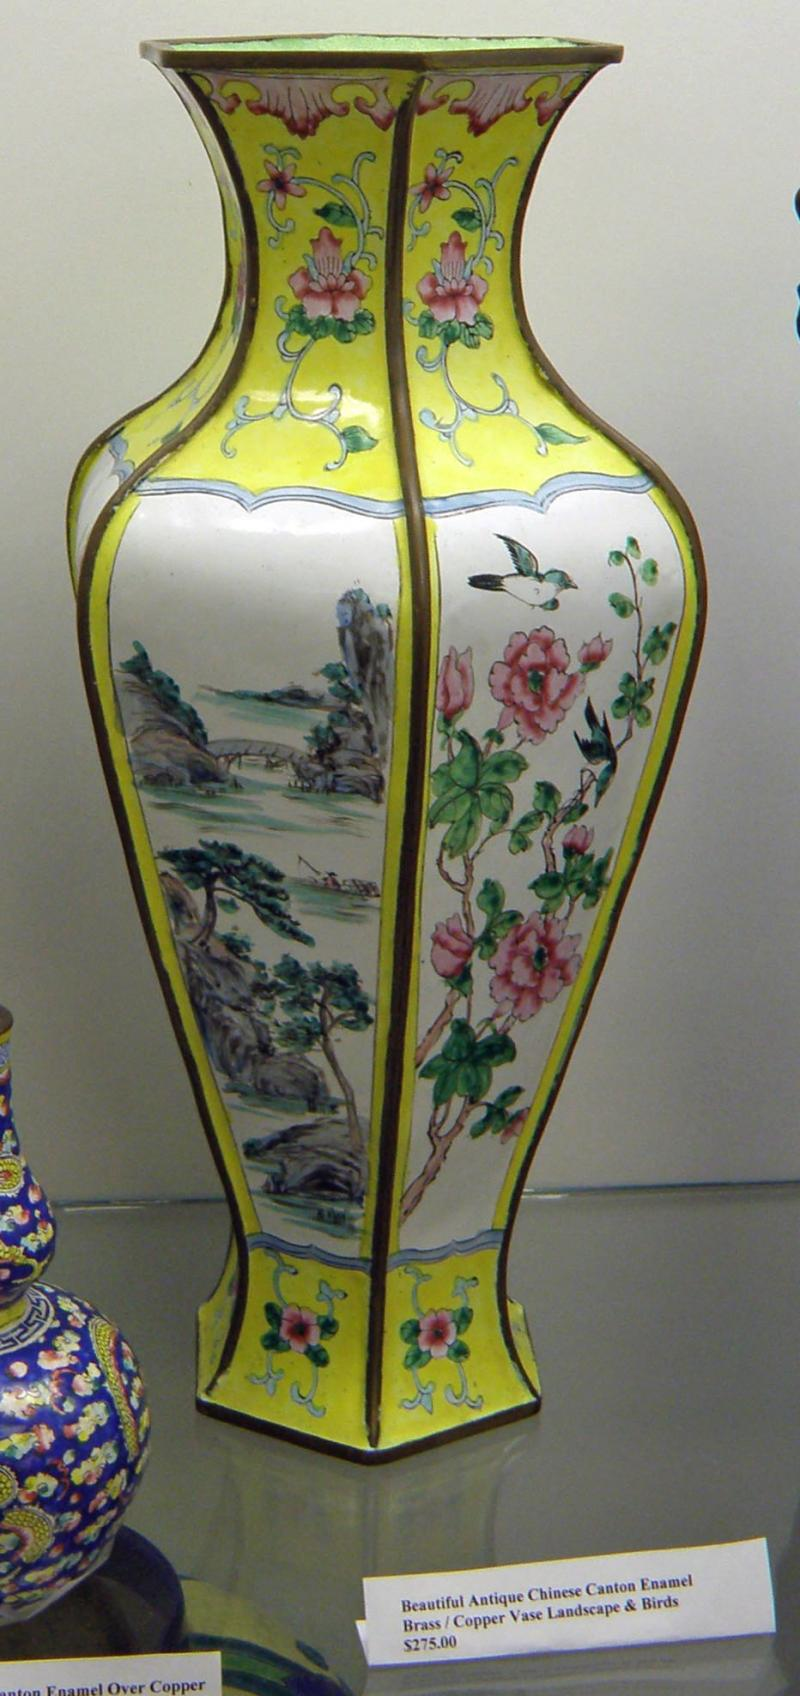 Beautiful Antique Chinese Canton Enamel Brass-Copper Vase Landscape and Birds